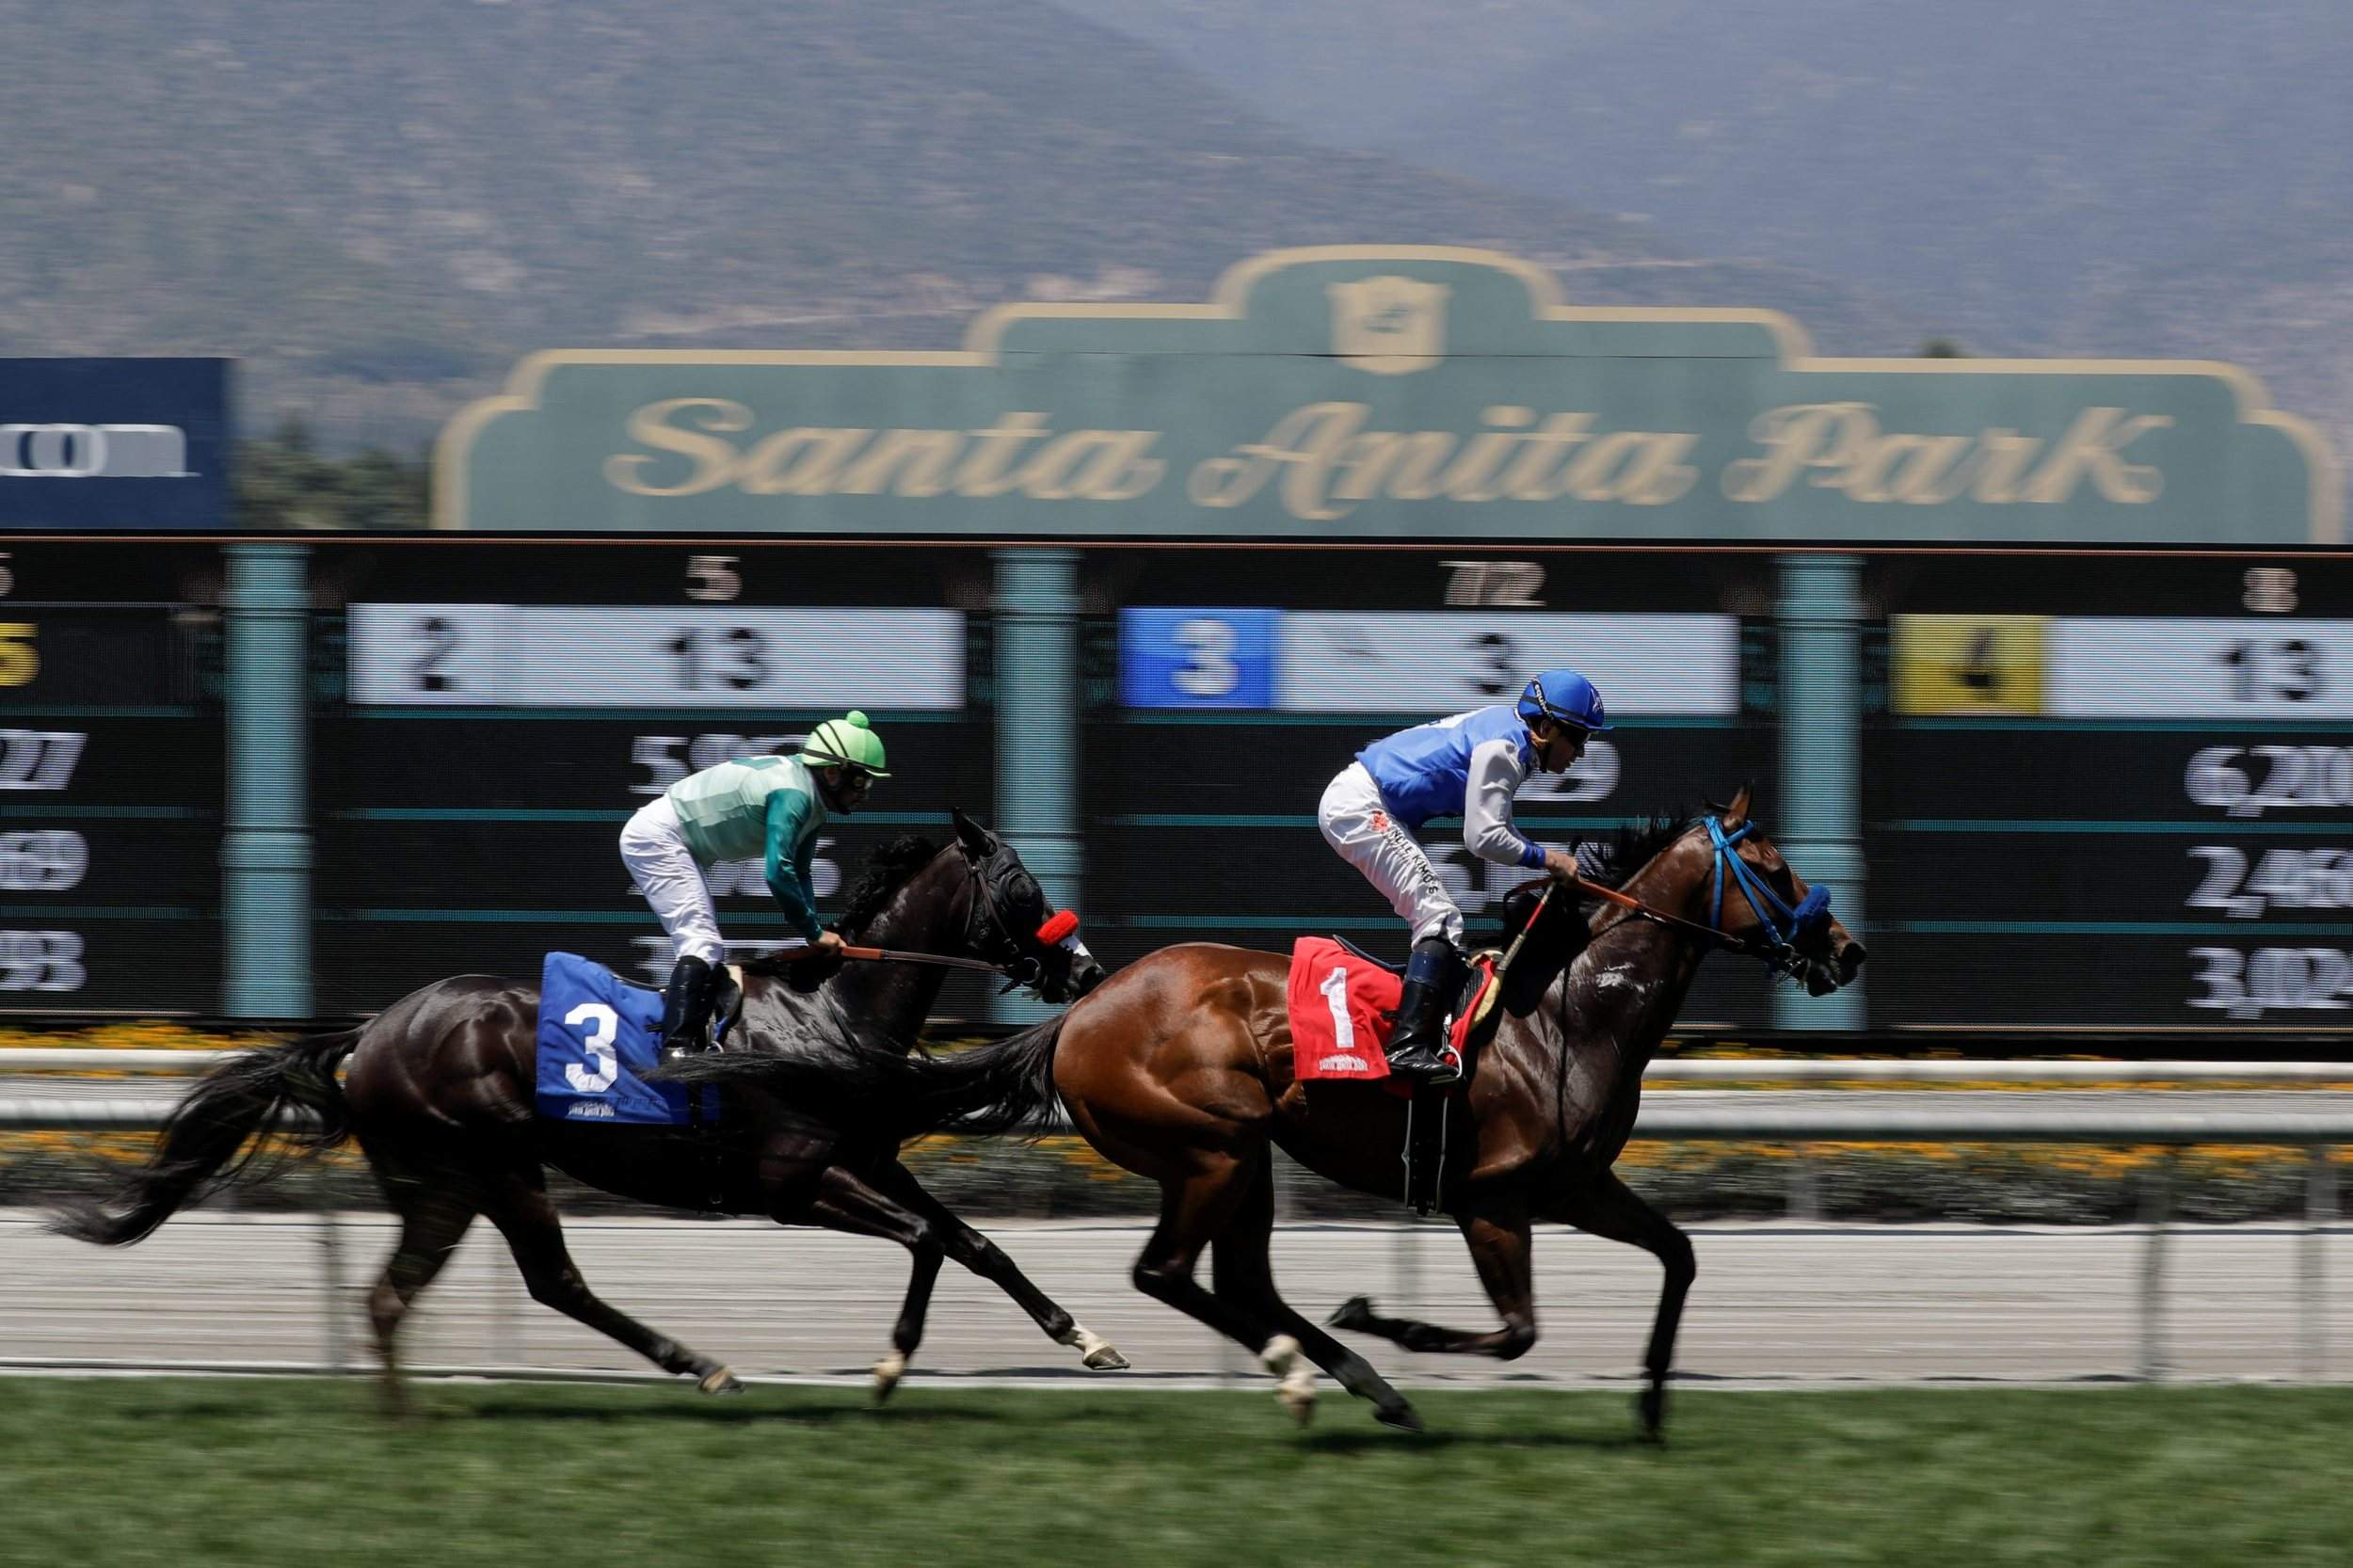 Breeders Cup To Add To Safety Measures At Santa Anita